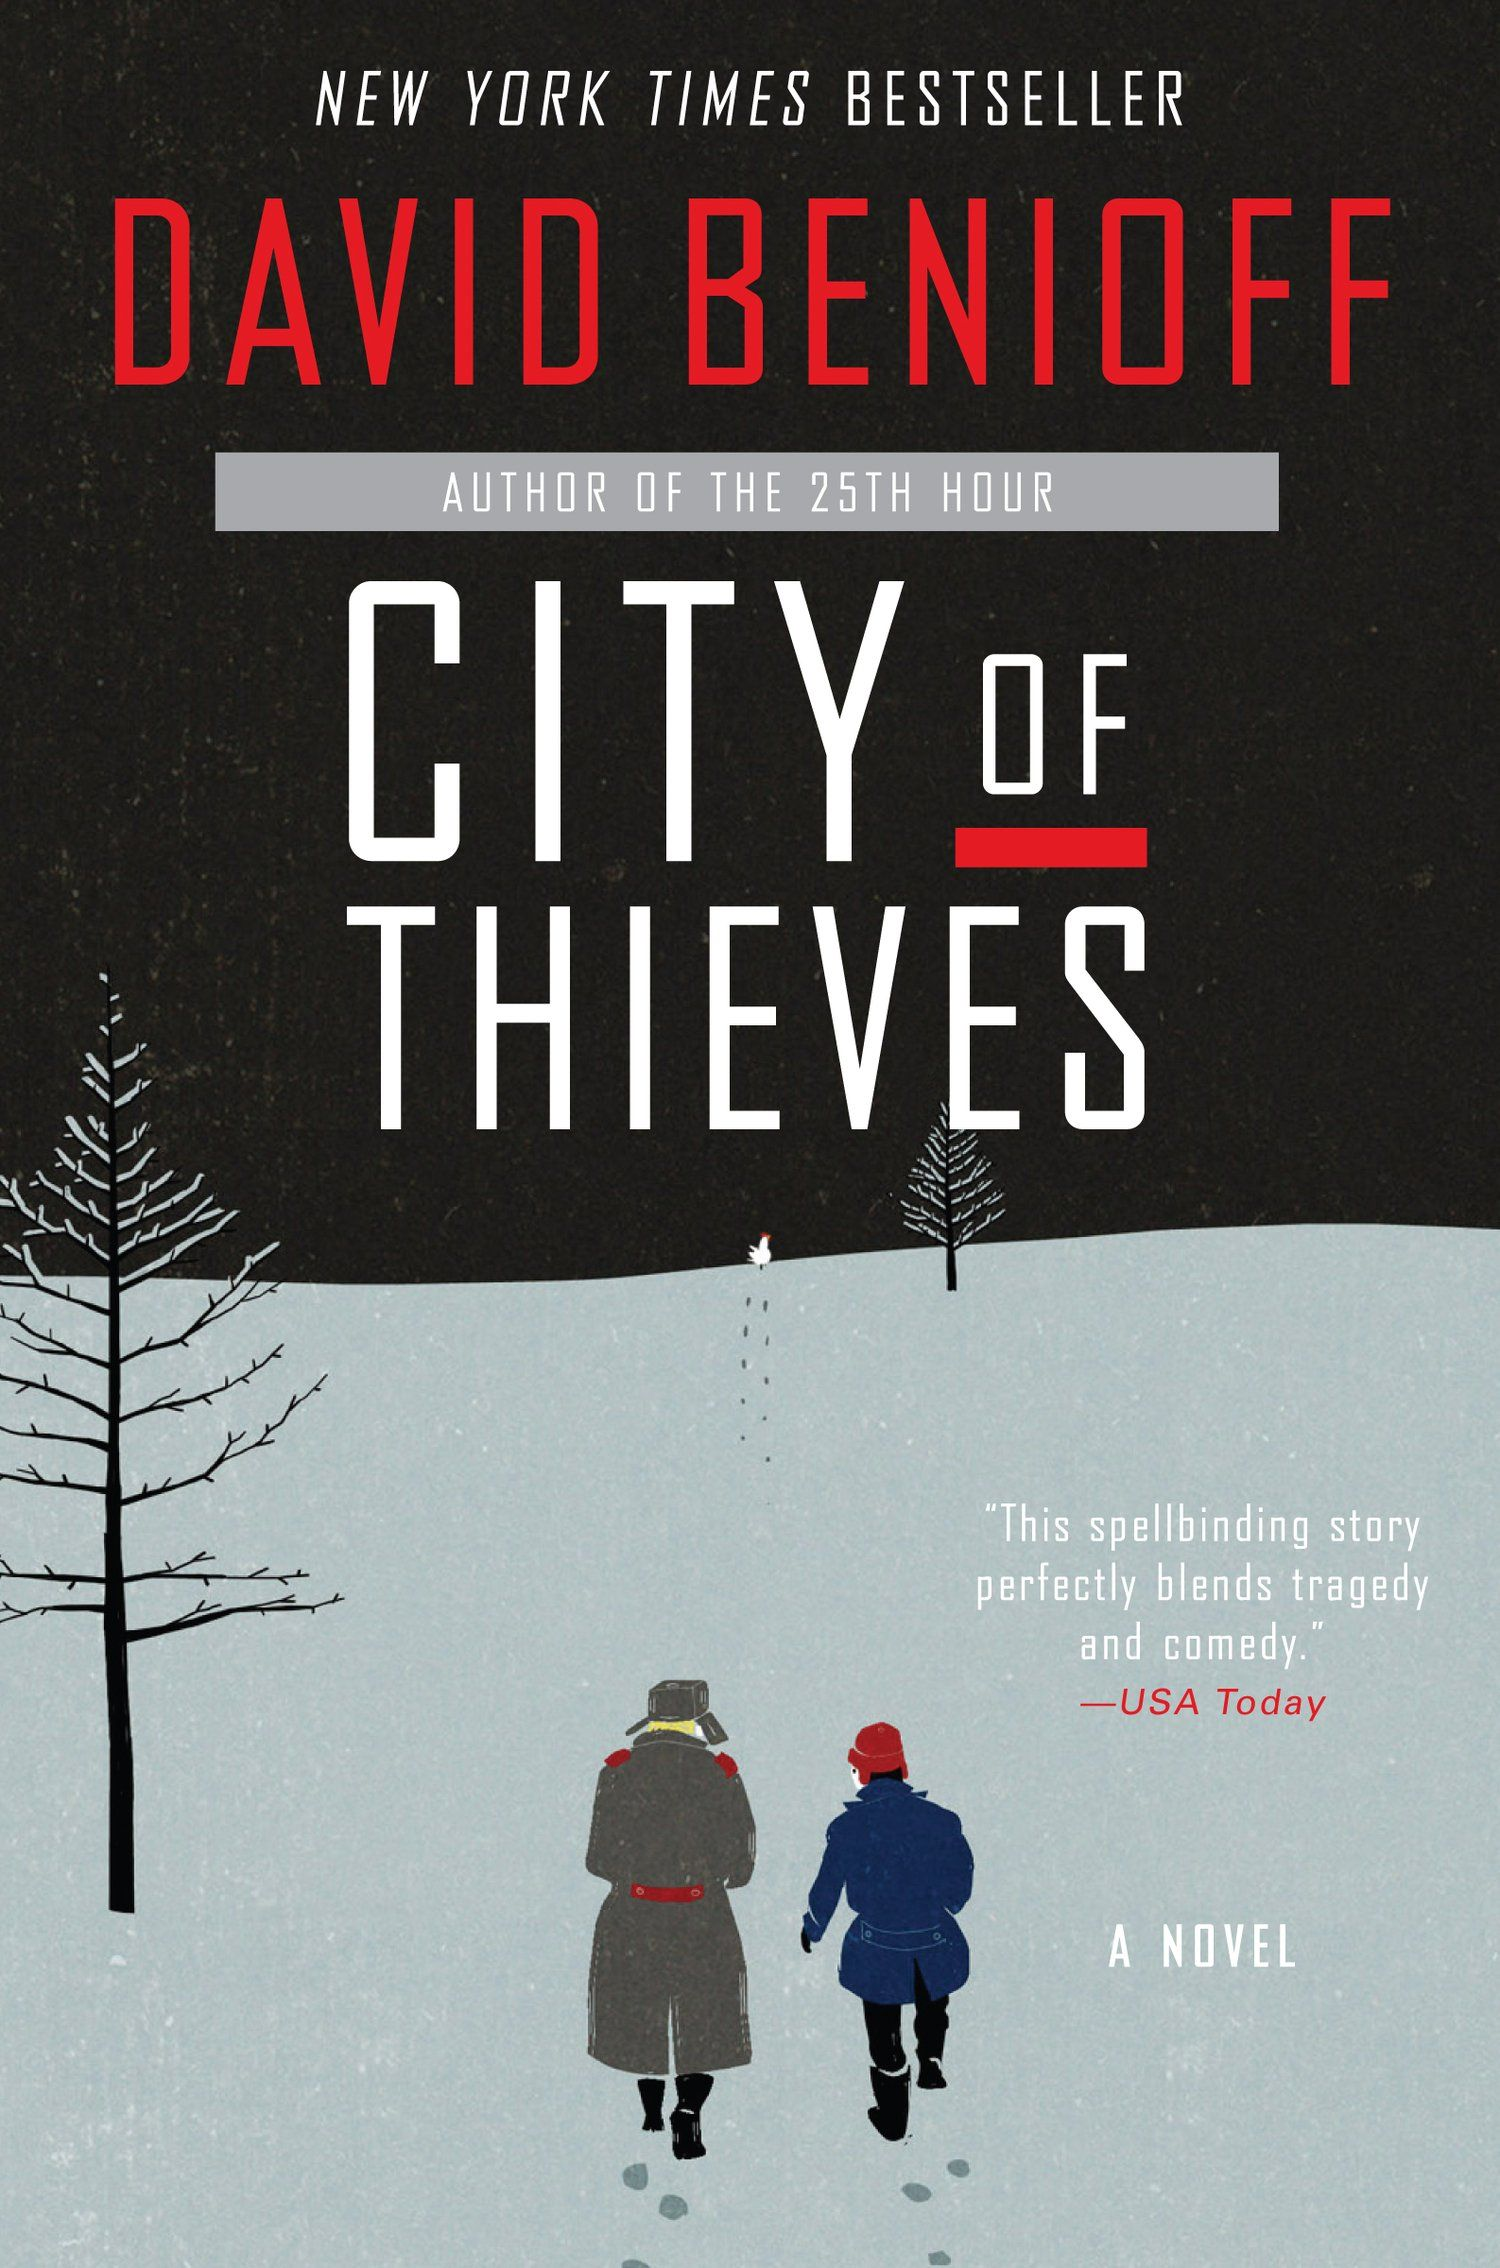 City Of Thieves A Novel David Benioff 9780452295292 Amazon Com Books Good Books Books To Read Life Changing Books